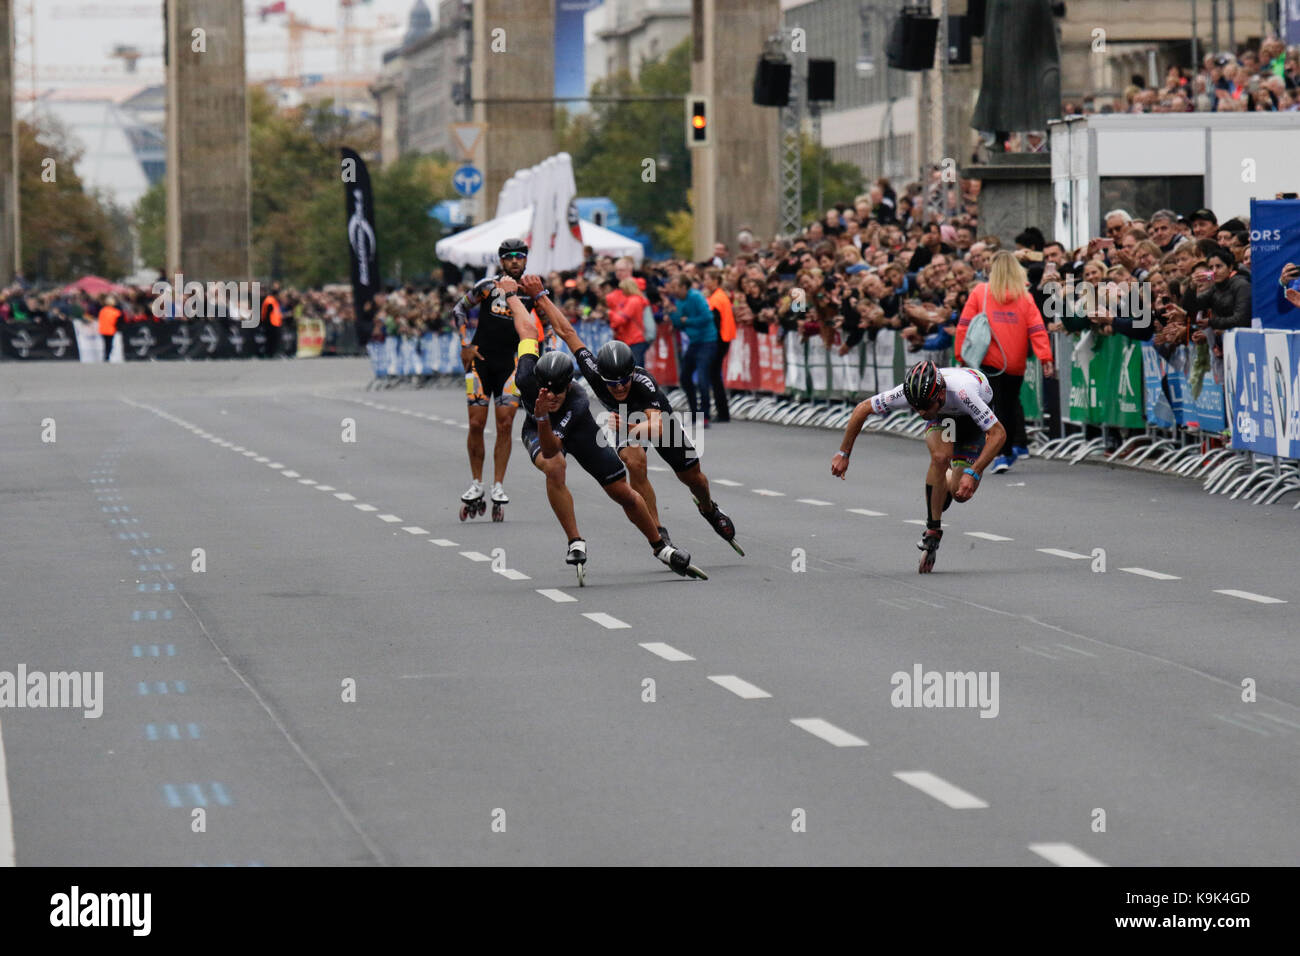 Berlin, Germany. 23rd September 2017. Second place Patxi Peula from Spain crosses the finishing line.Skaters race the last meters of the course from the Brandenburg Gate to the finishing line. Over 5,500 skater took part in the 2017 BMW Berlin Marathon Inline skating race, a day ahead of the  Marathon race. Bart Swings from Belgium won the race in 58:42 for the 5th year in a row. Credit: Michael Debets/Alamy Live News Stock Photo